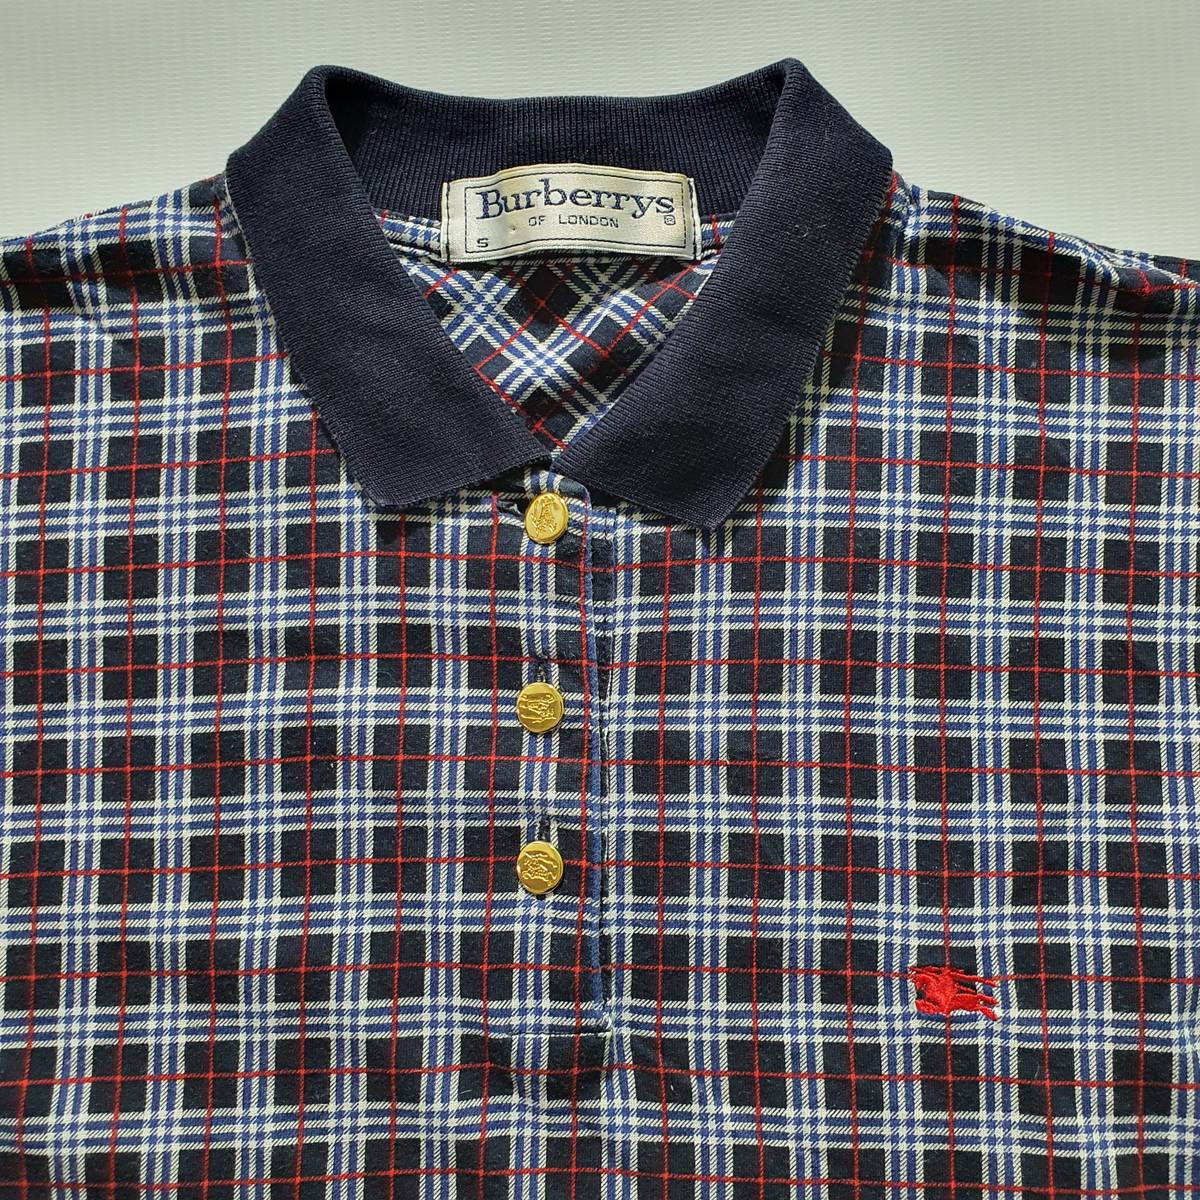 80/'s vintage Buerberrys polo shirts made in England